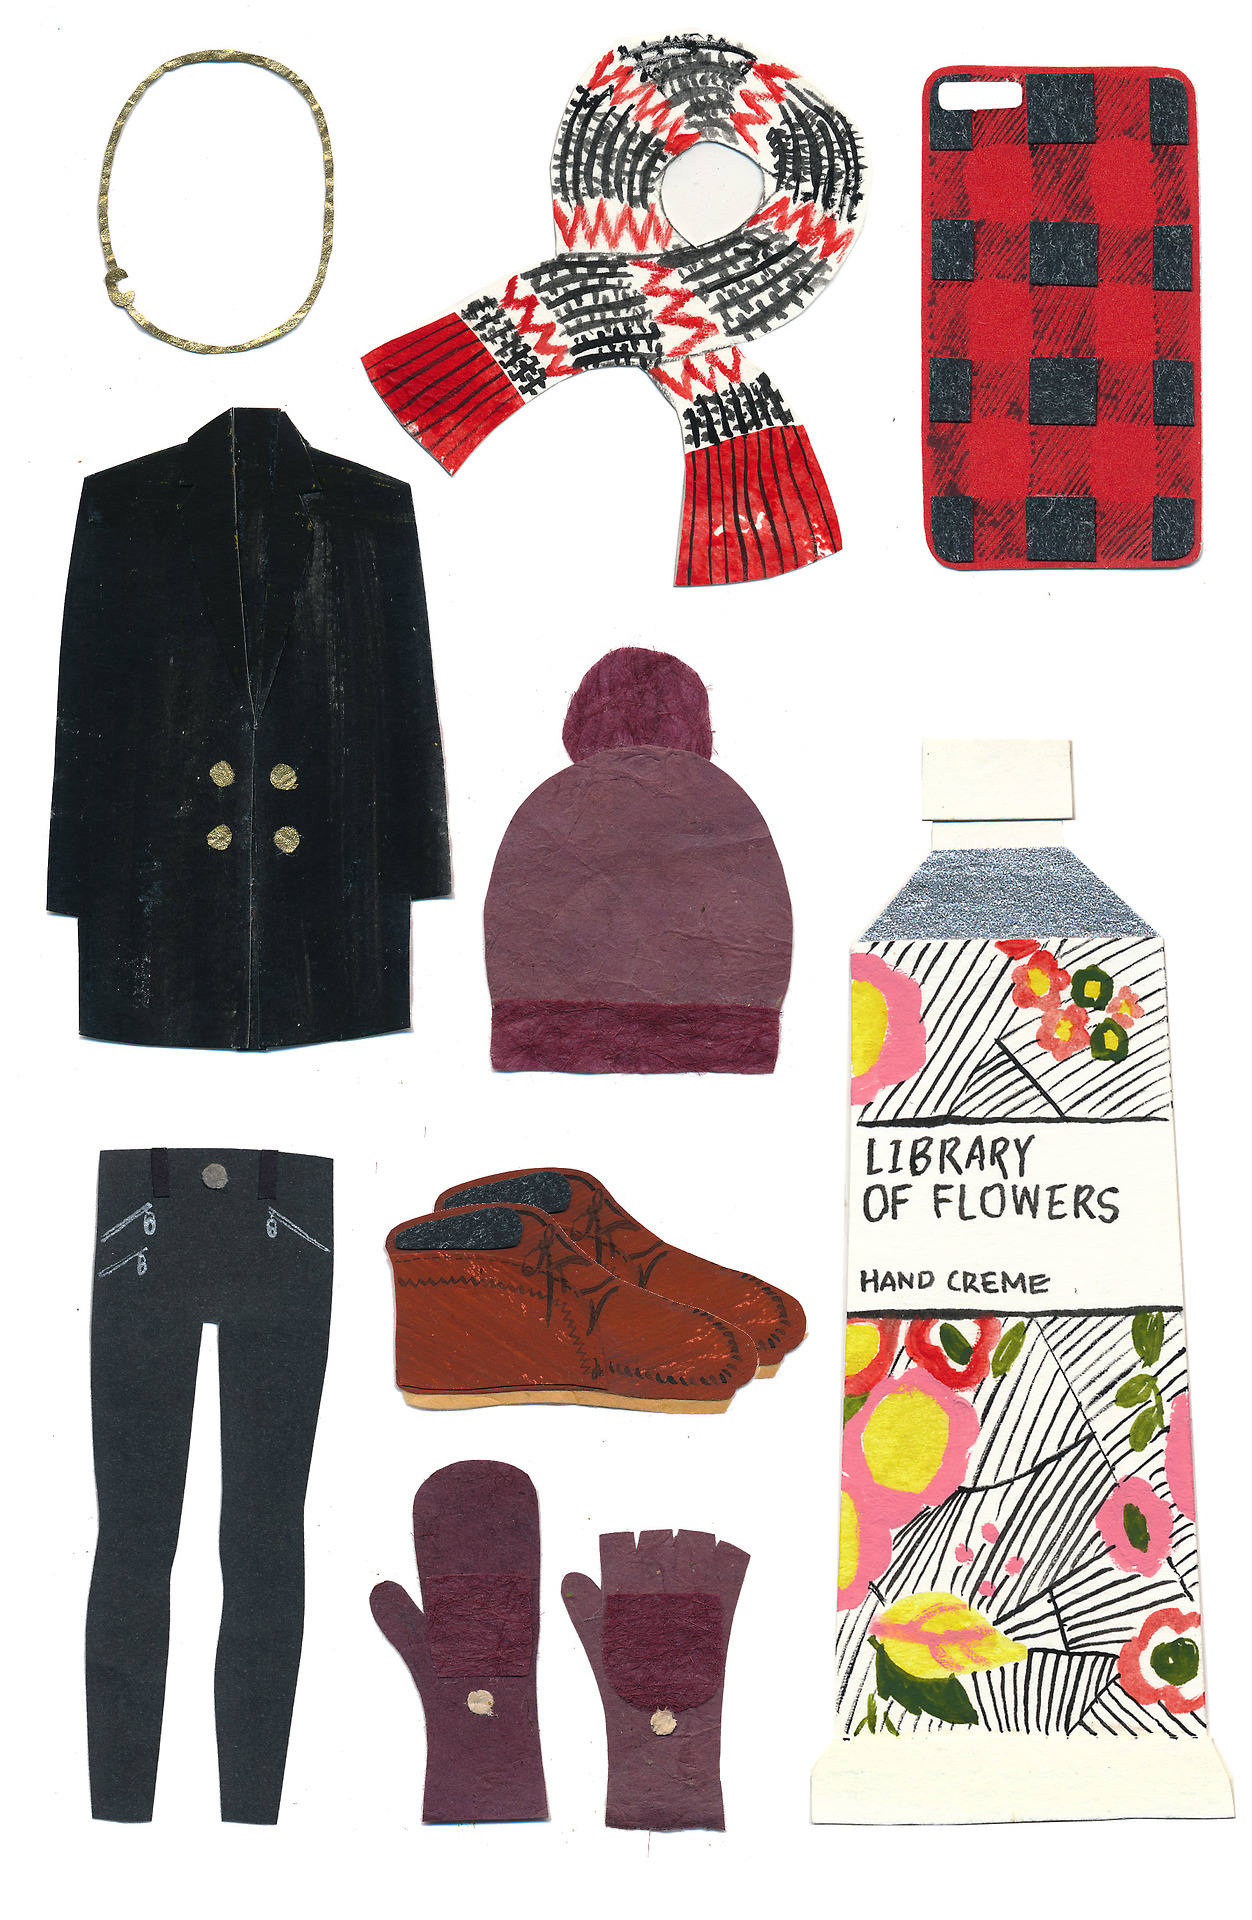 My winter wish list is here! Love this time of the year.  Asymmetrical Letter Necklace, Jcrew Zigzag Scarf, Rubber iPhone Case, made up black coat, Topshop Pompom Beanie, Rag & Bone Jeans, Minnetonka Suede Boots, Madewell Merino Ribbed Gloves, Library of Flowers hand creme In case you missed it:  Summer & Fall Wish Lists